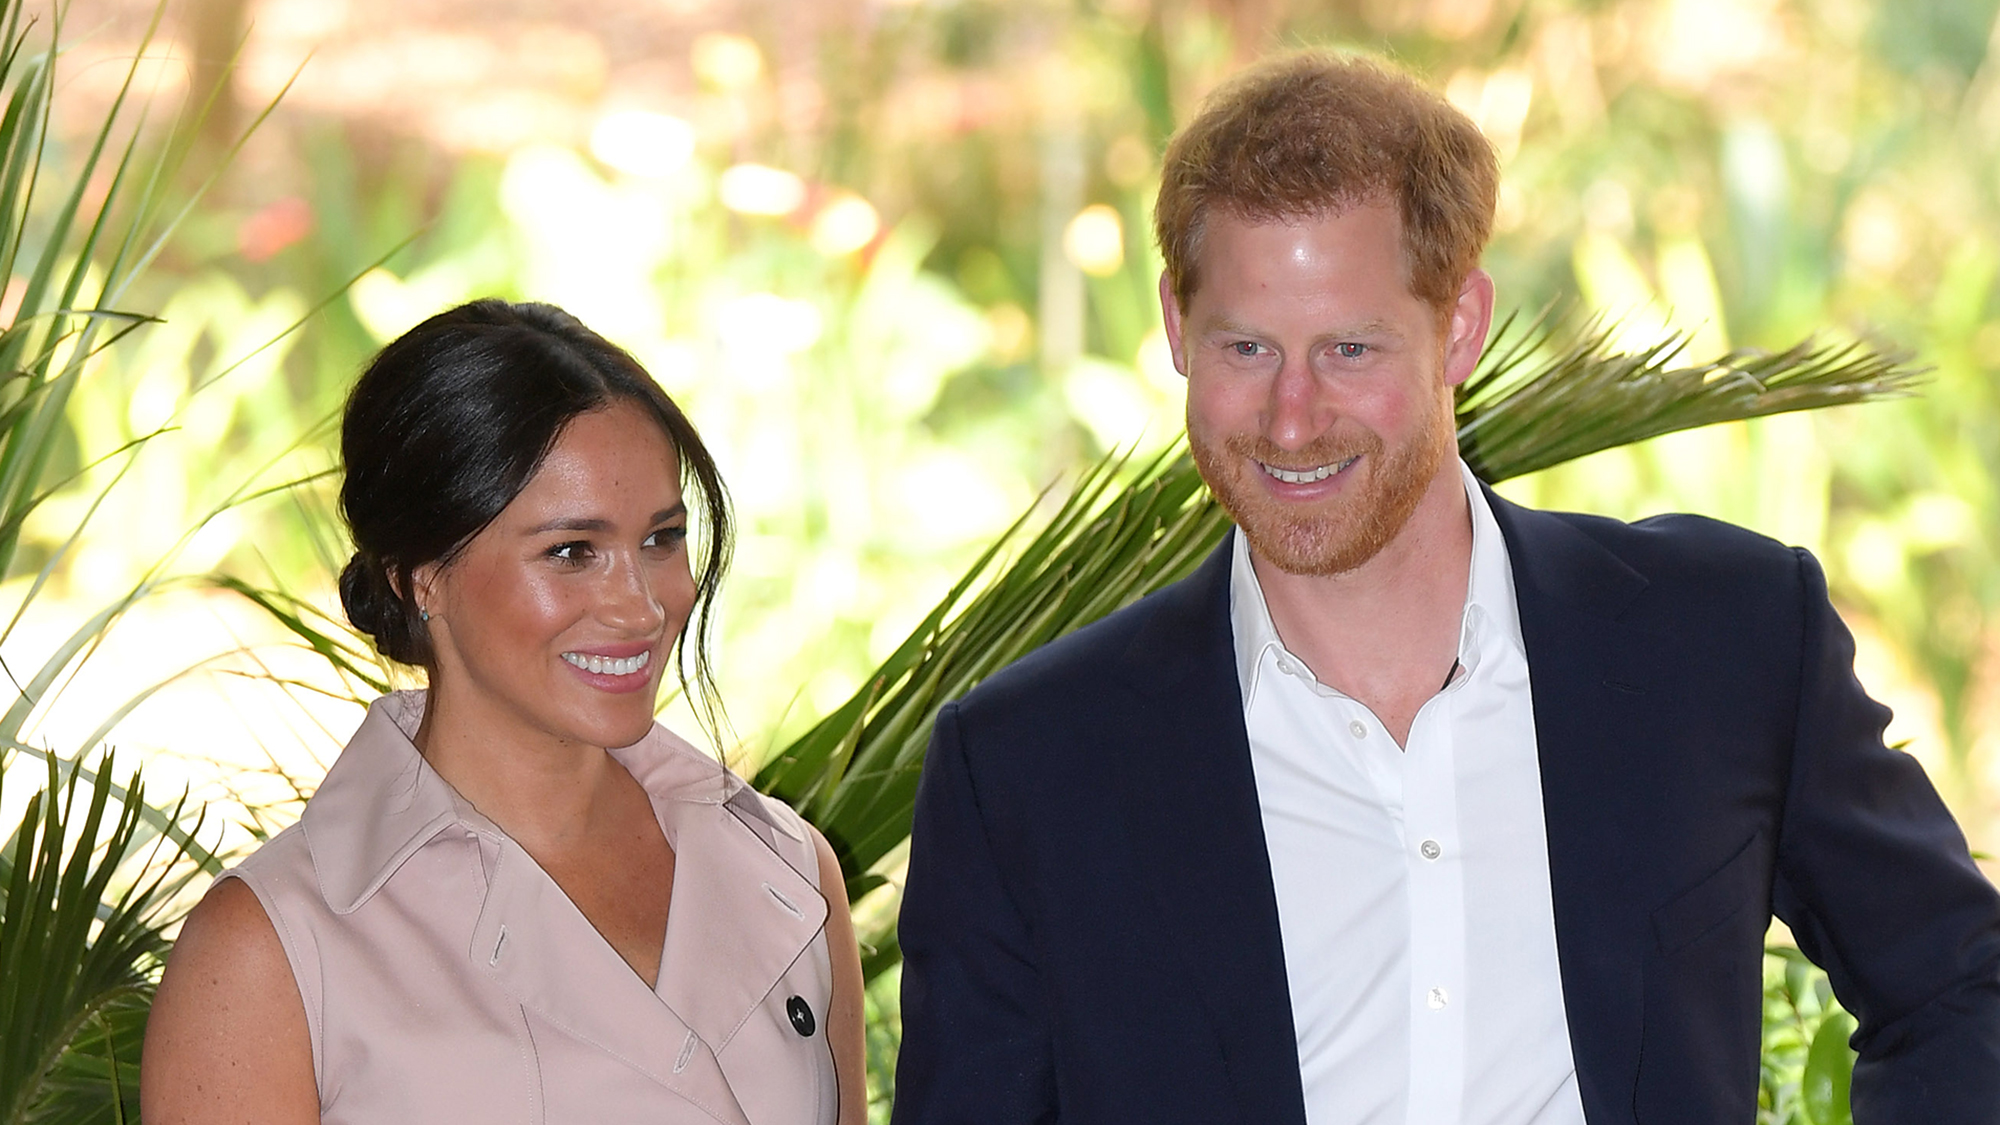 Why Harry and Meghan were refused by this Canadian restaurant